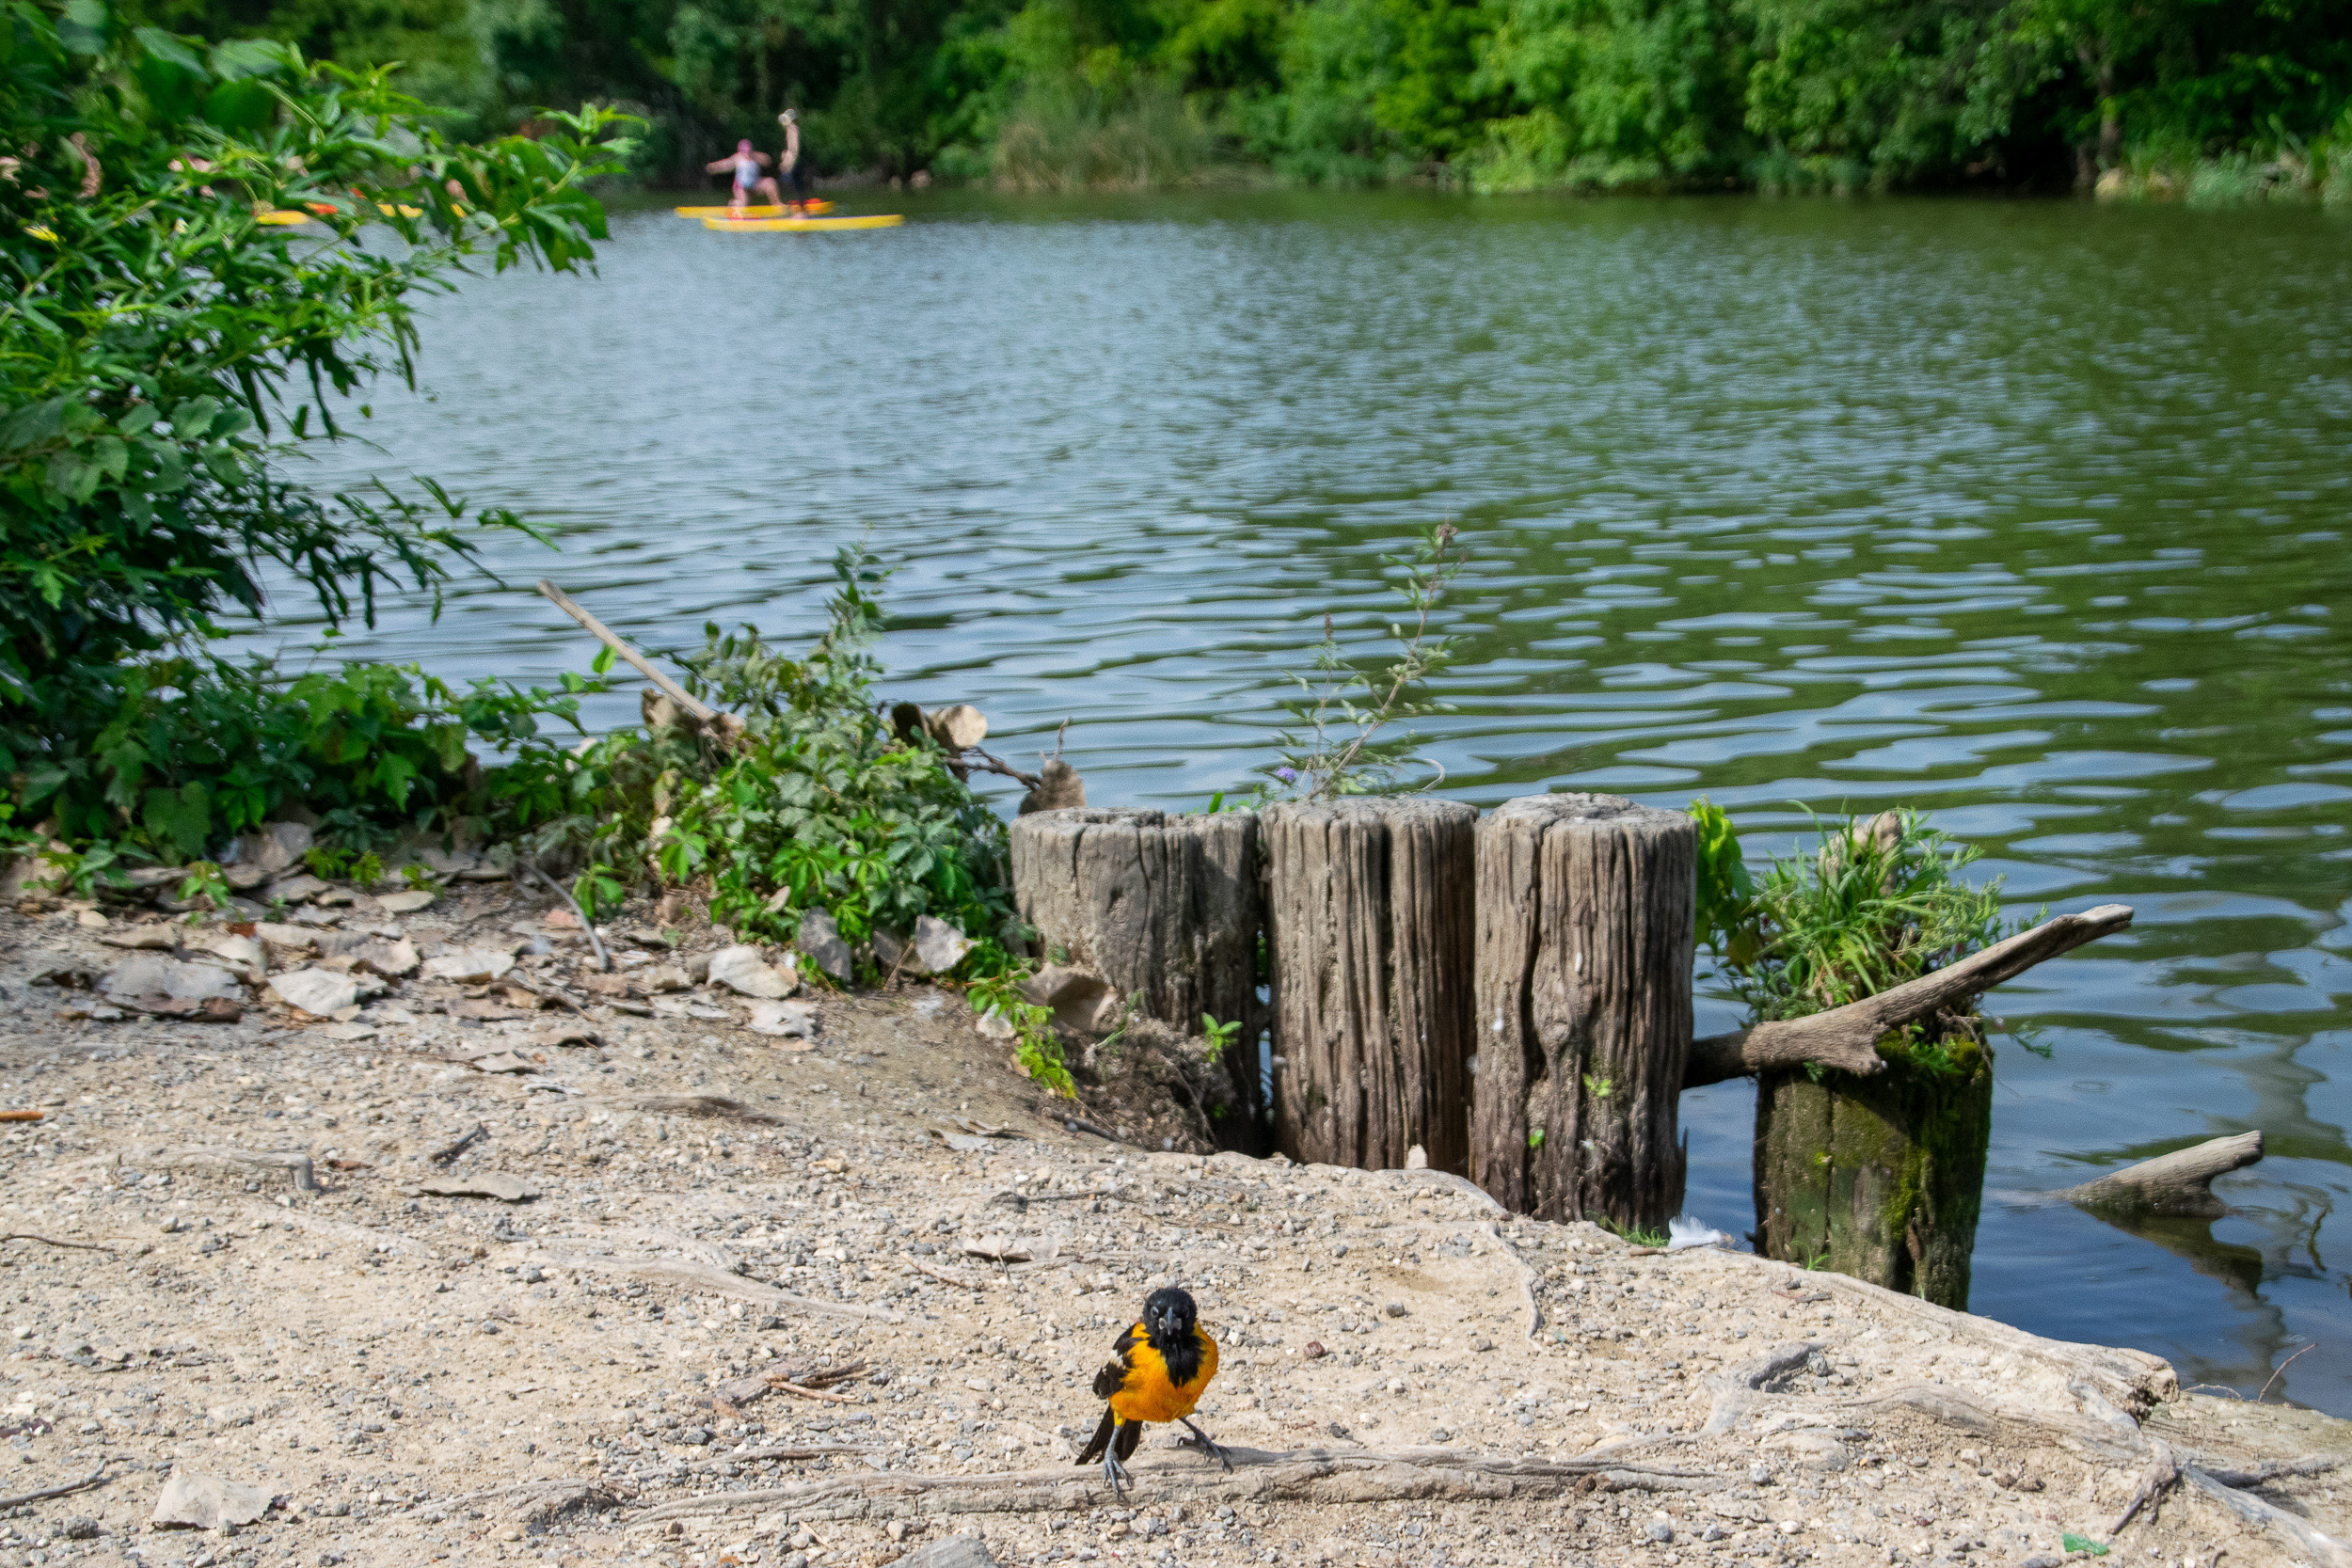 A vibrant orange oriole looks on from the shore of White Rock Lake as the yogis balance on their paddle boards.